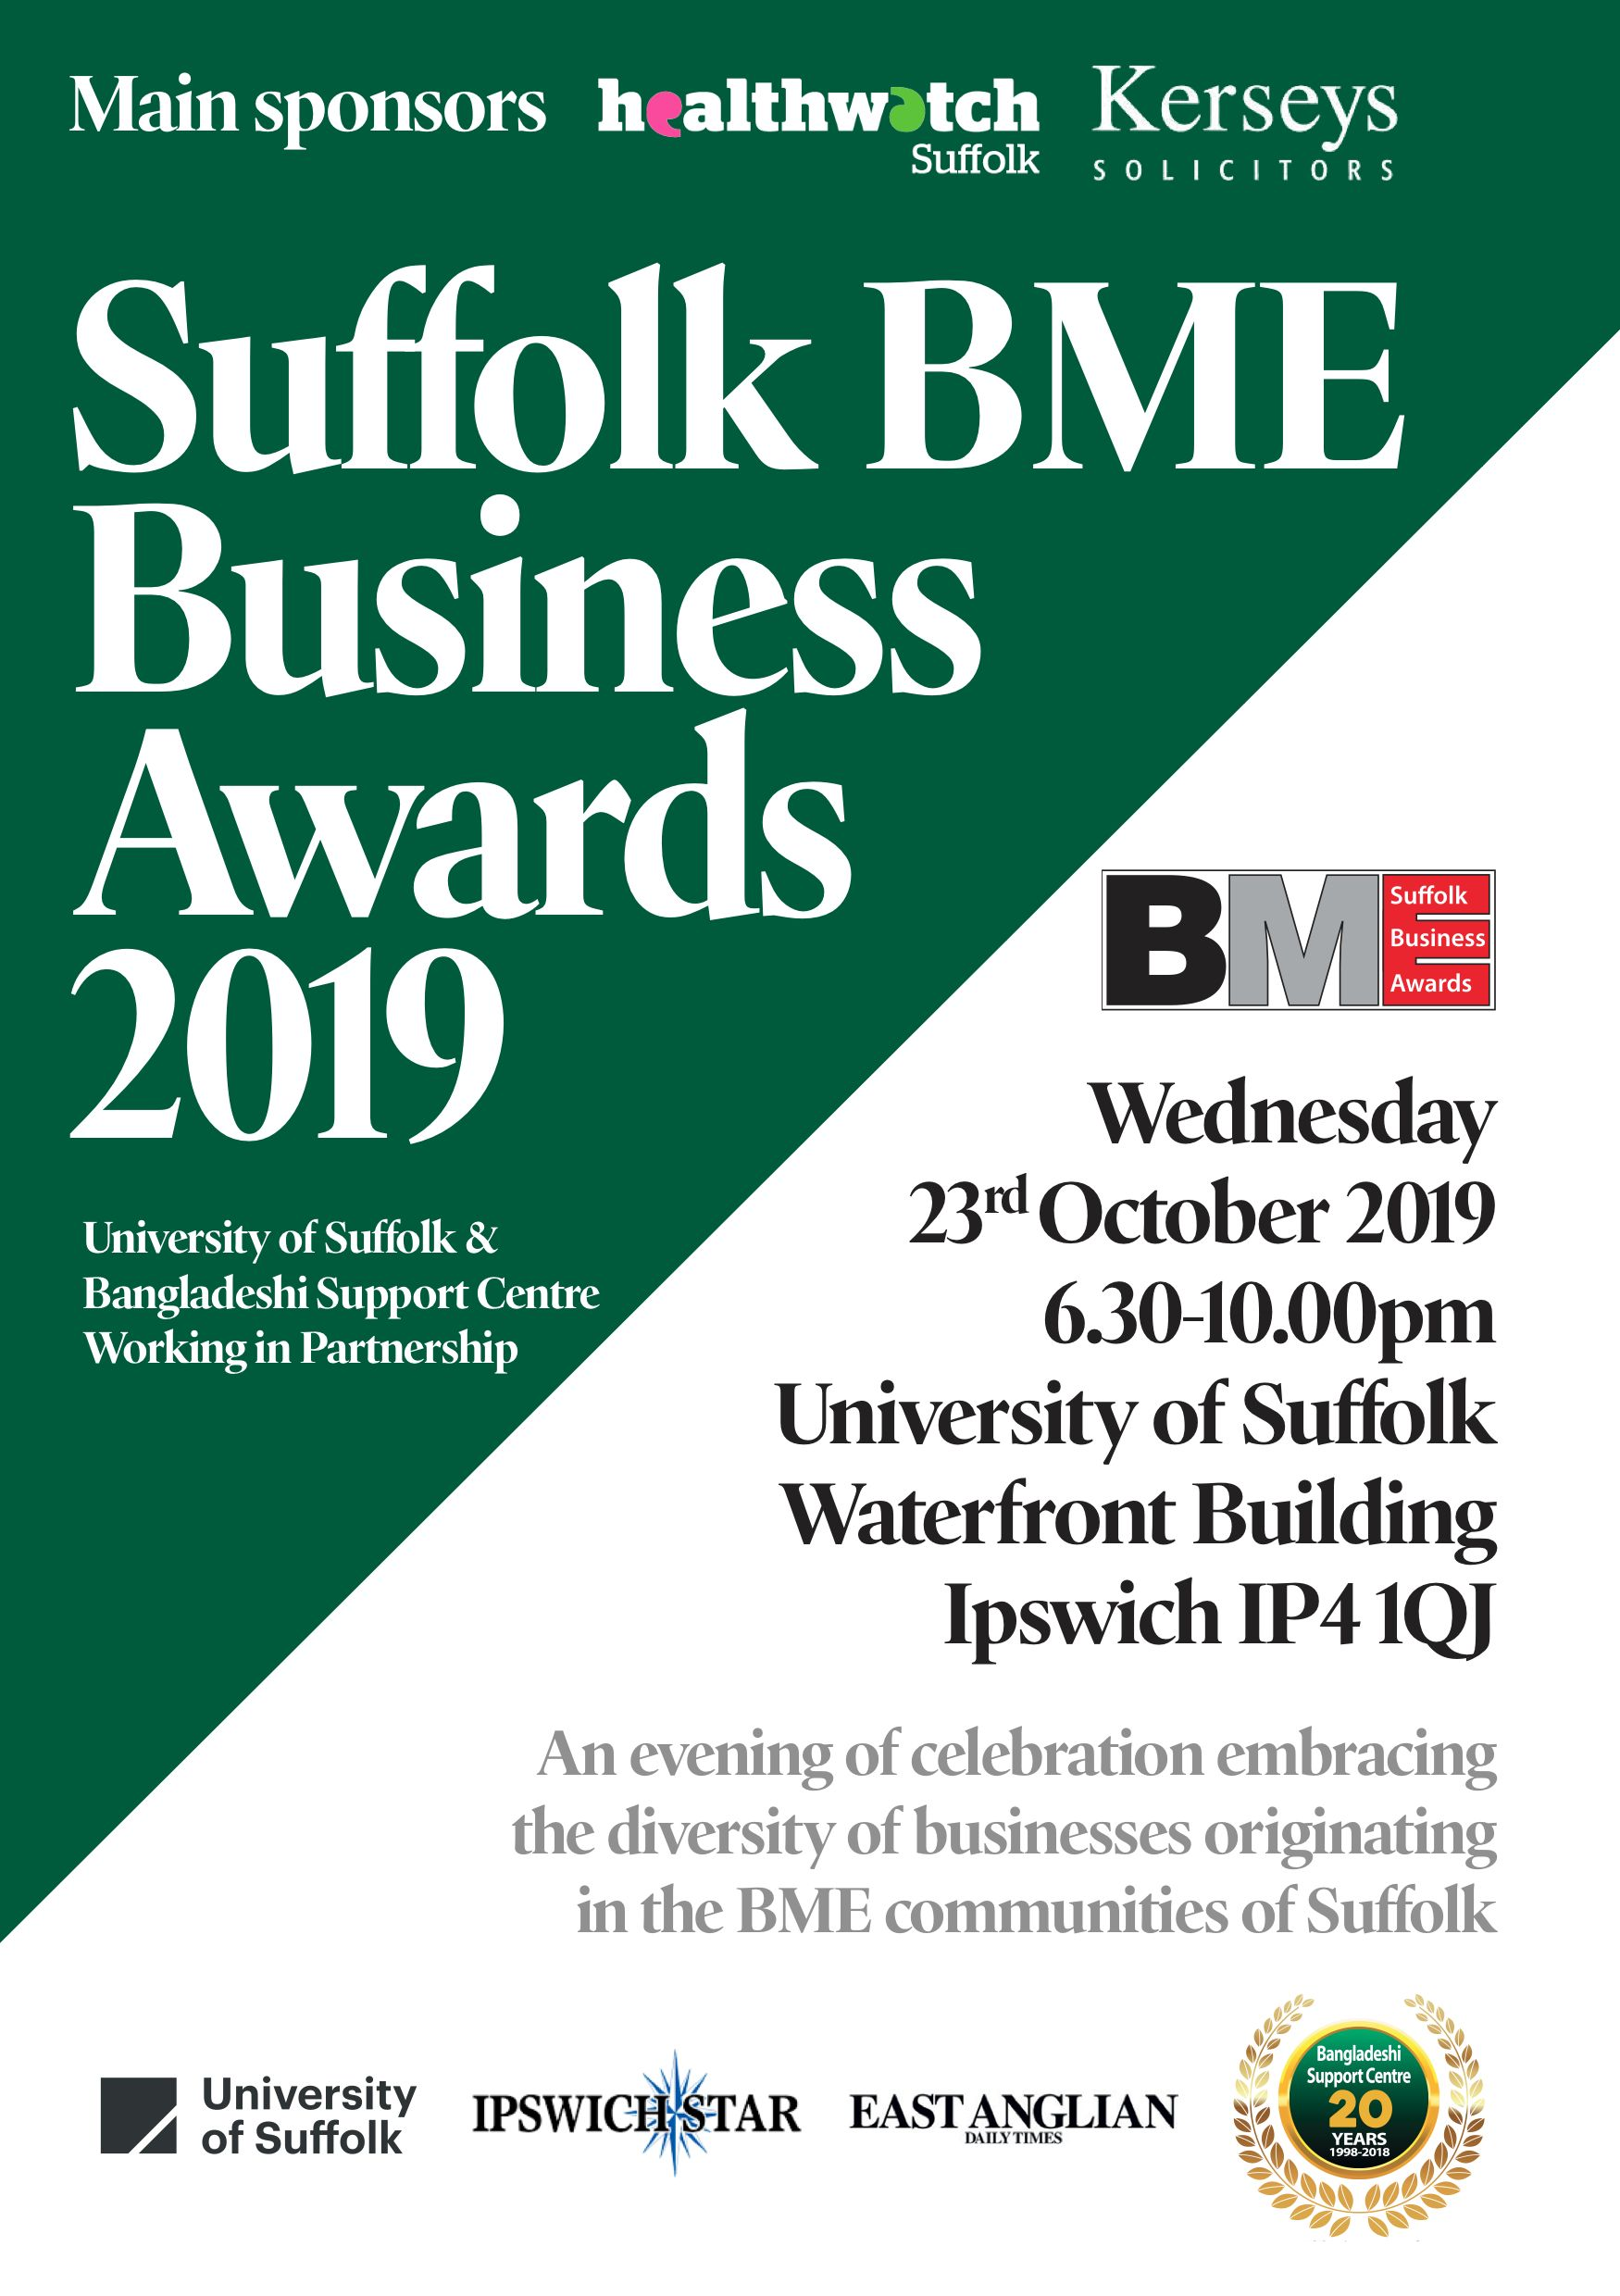 Suffolk BME Business Awards 2019